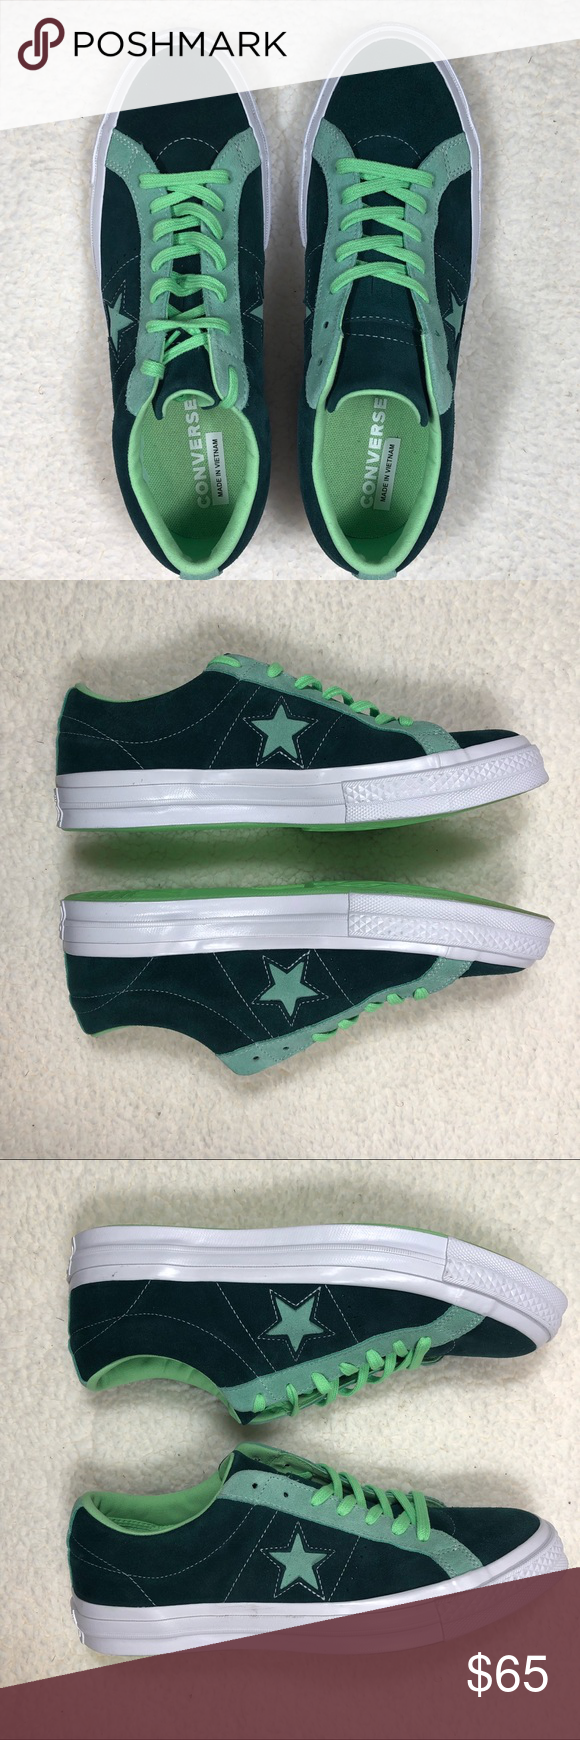 NWOT Mens Green Suede Converse One star Sneakers NWOT Two toned green unisex Converse One Star sneakers.   Upper: Suede Soles: Rubber Smoke free environment Currently in stock: sizes 8 10 & 11 No original box available but we ensure safe shipping of your purchase. Converse Shoes Sneakers #men'sshoes #men's #shoes #converse